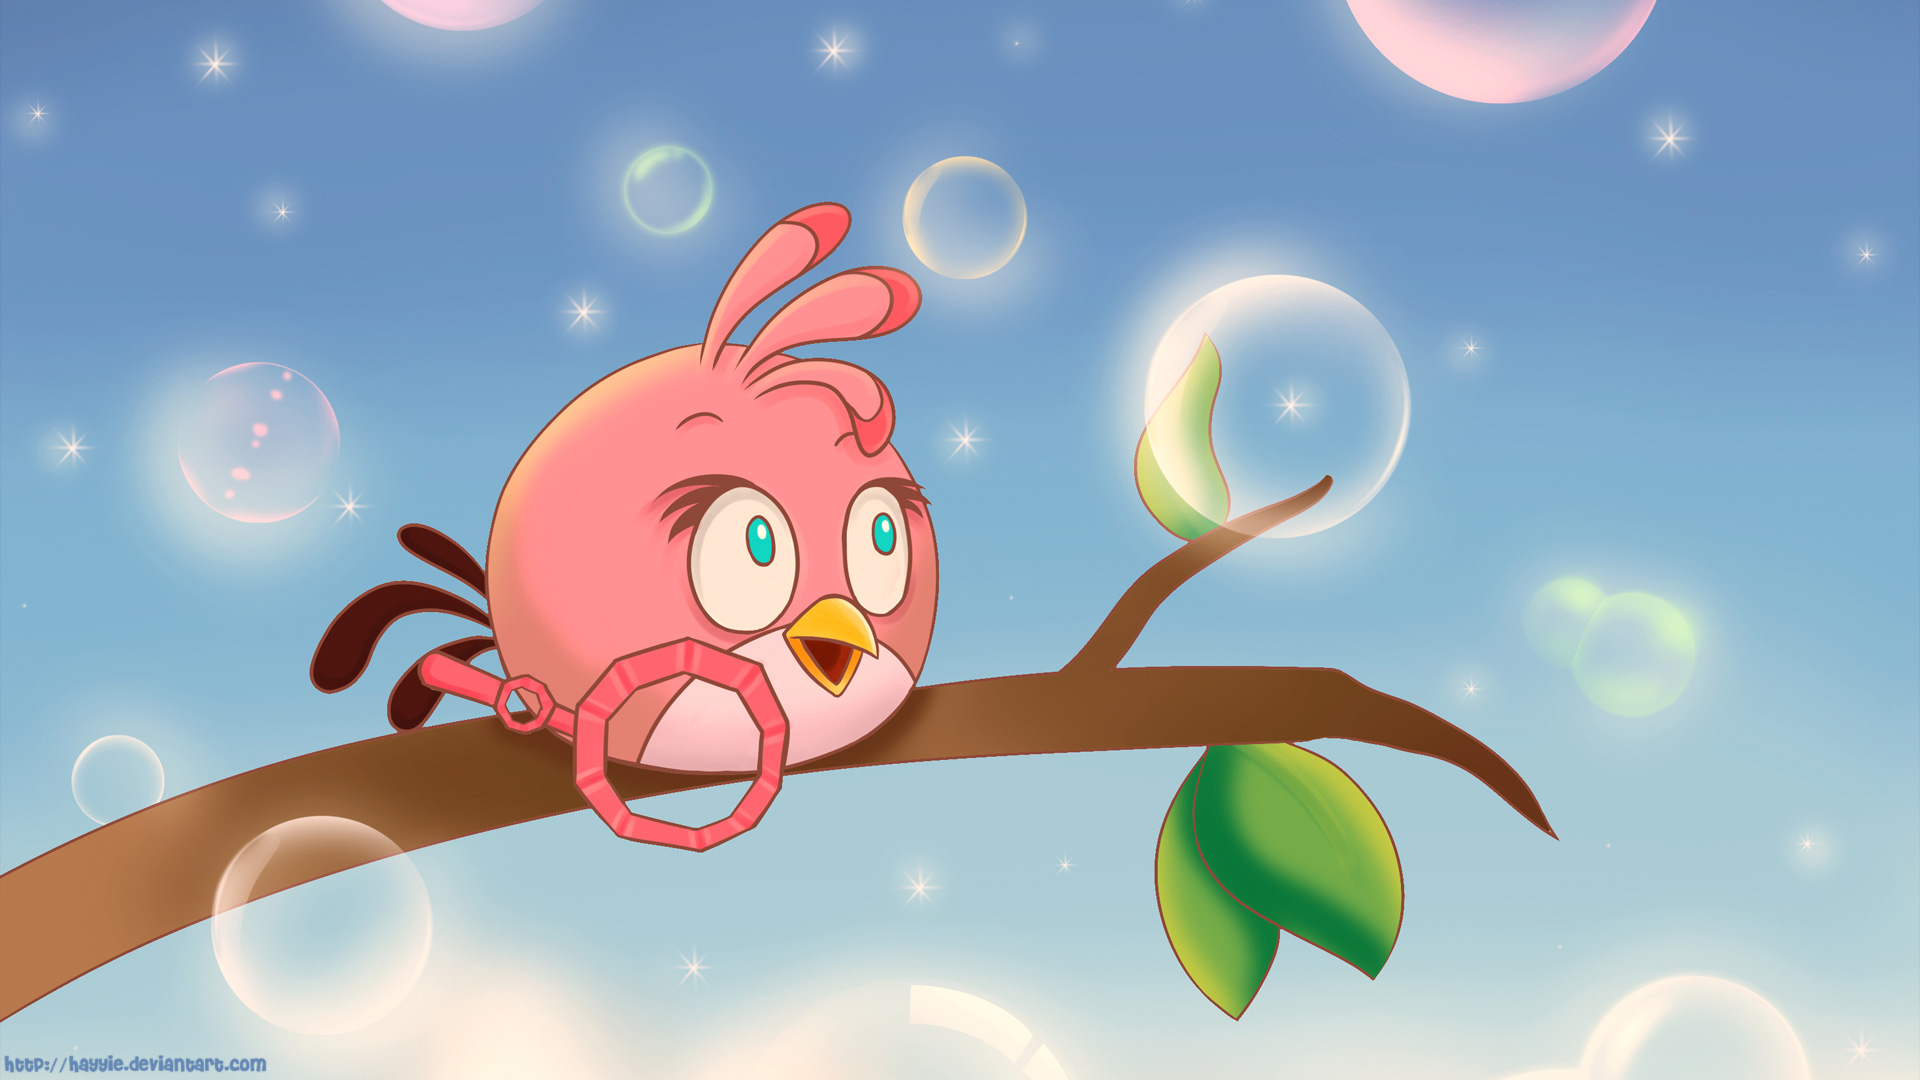 Angry Birds Pink Bird Desktop Background by Hayyie